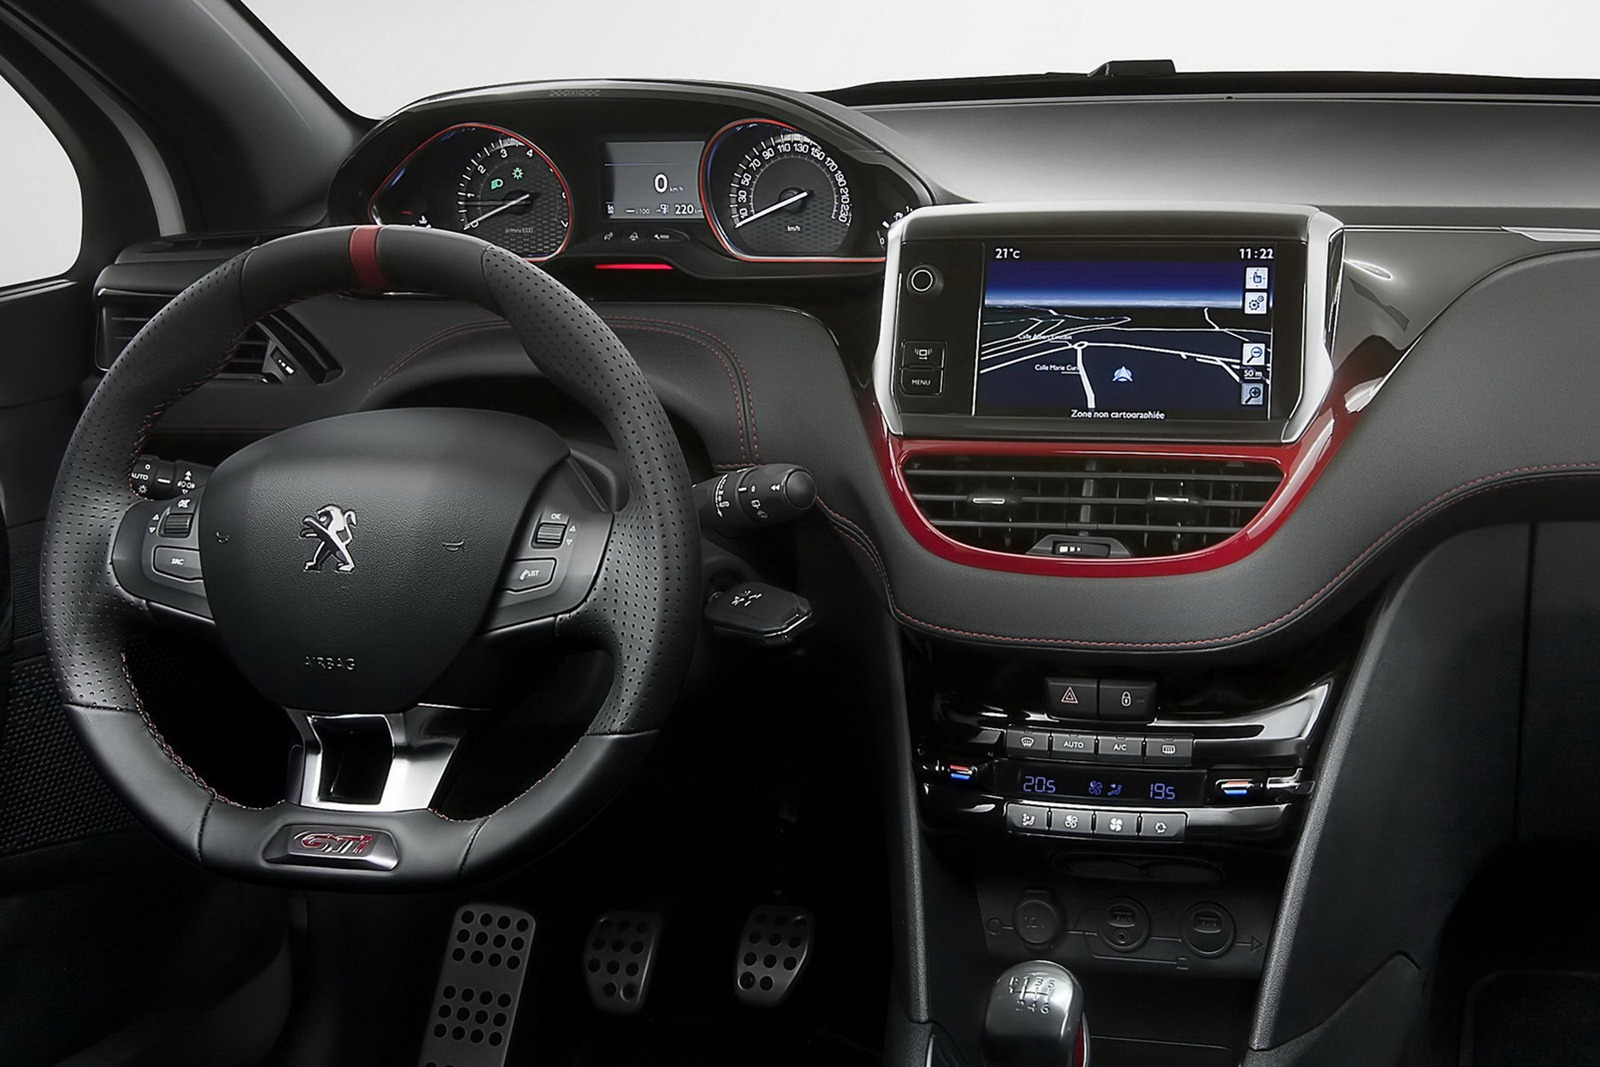 peugeot 208 interieur car interior design